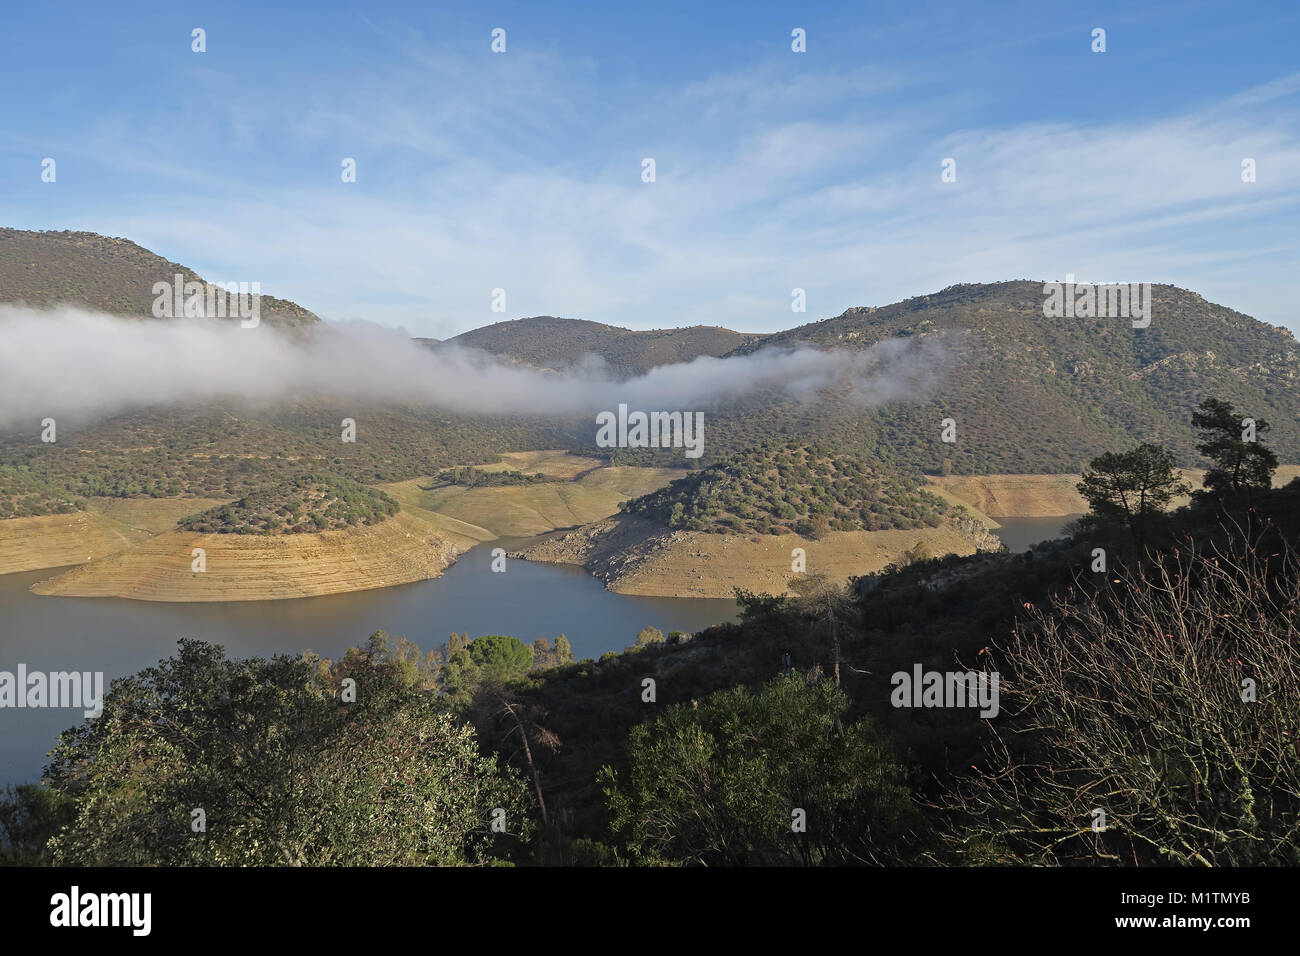 view over reservoir with low water level and bank of cloud  Embalse del Jandula, Parque Natural Sierra de Andujar, - Stock Image